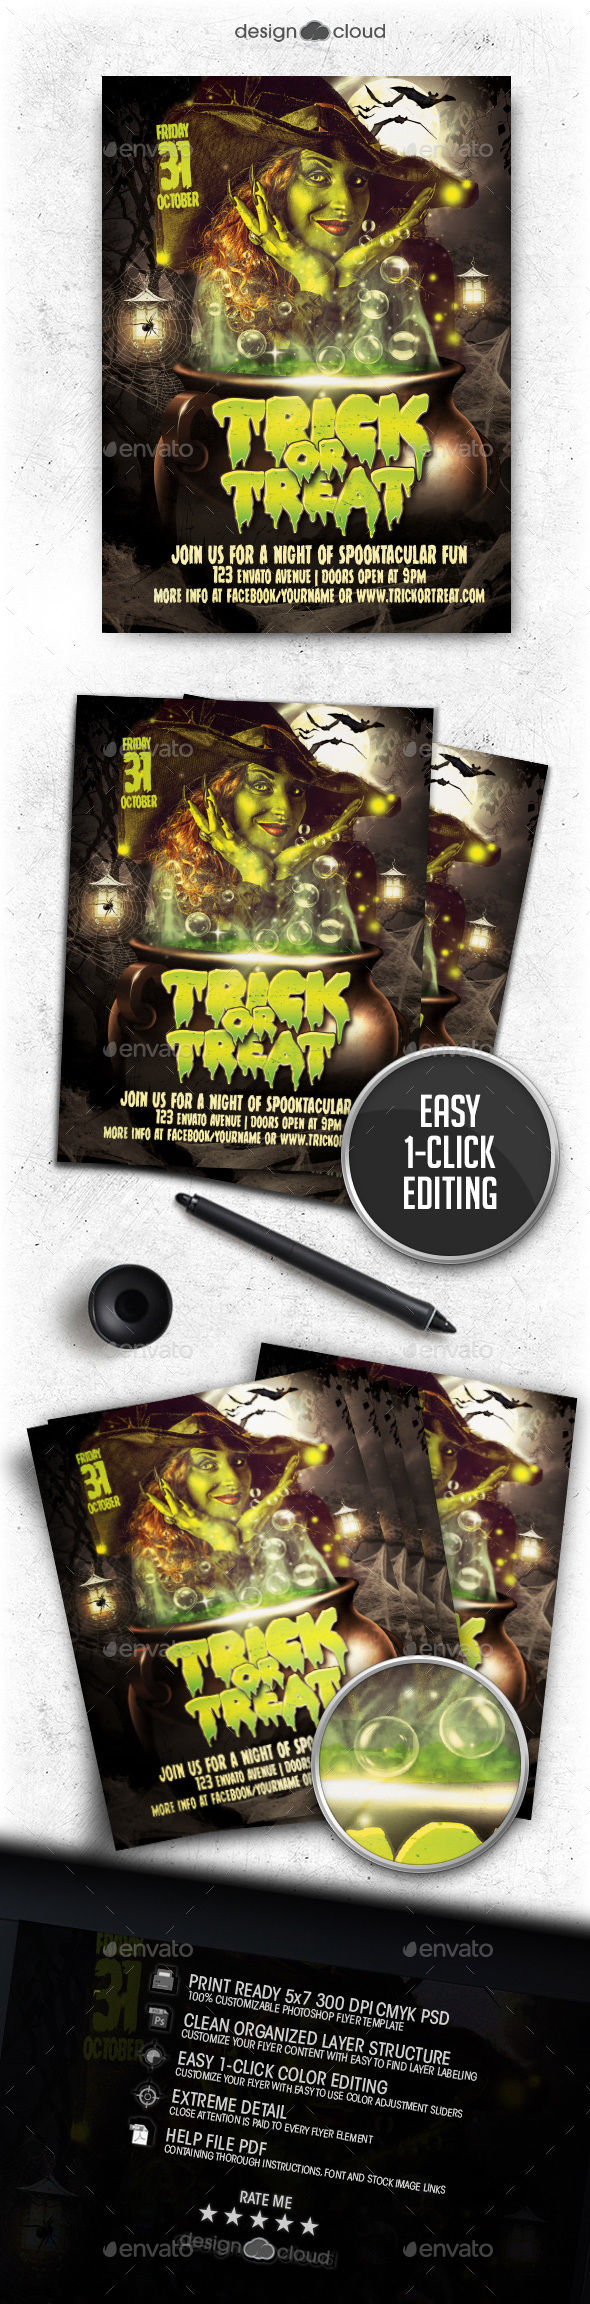 Trick Or Treat Halloween Flyer Template by Design-Cloud (Halloween party flyer)